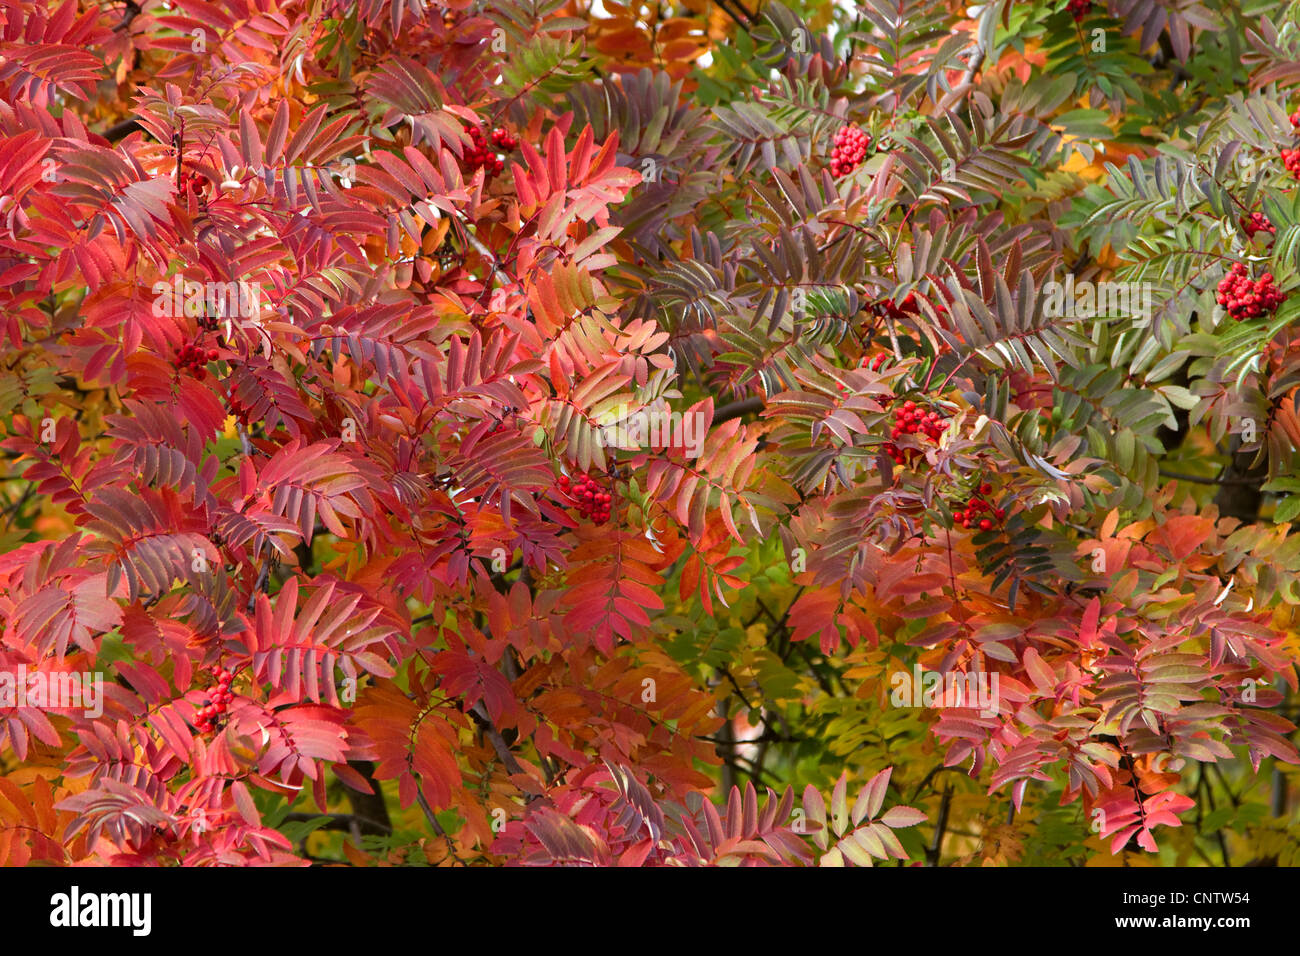 autumn rowan leaves in the trees as the background - Stock Image